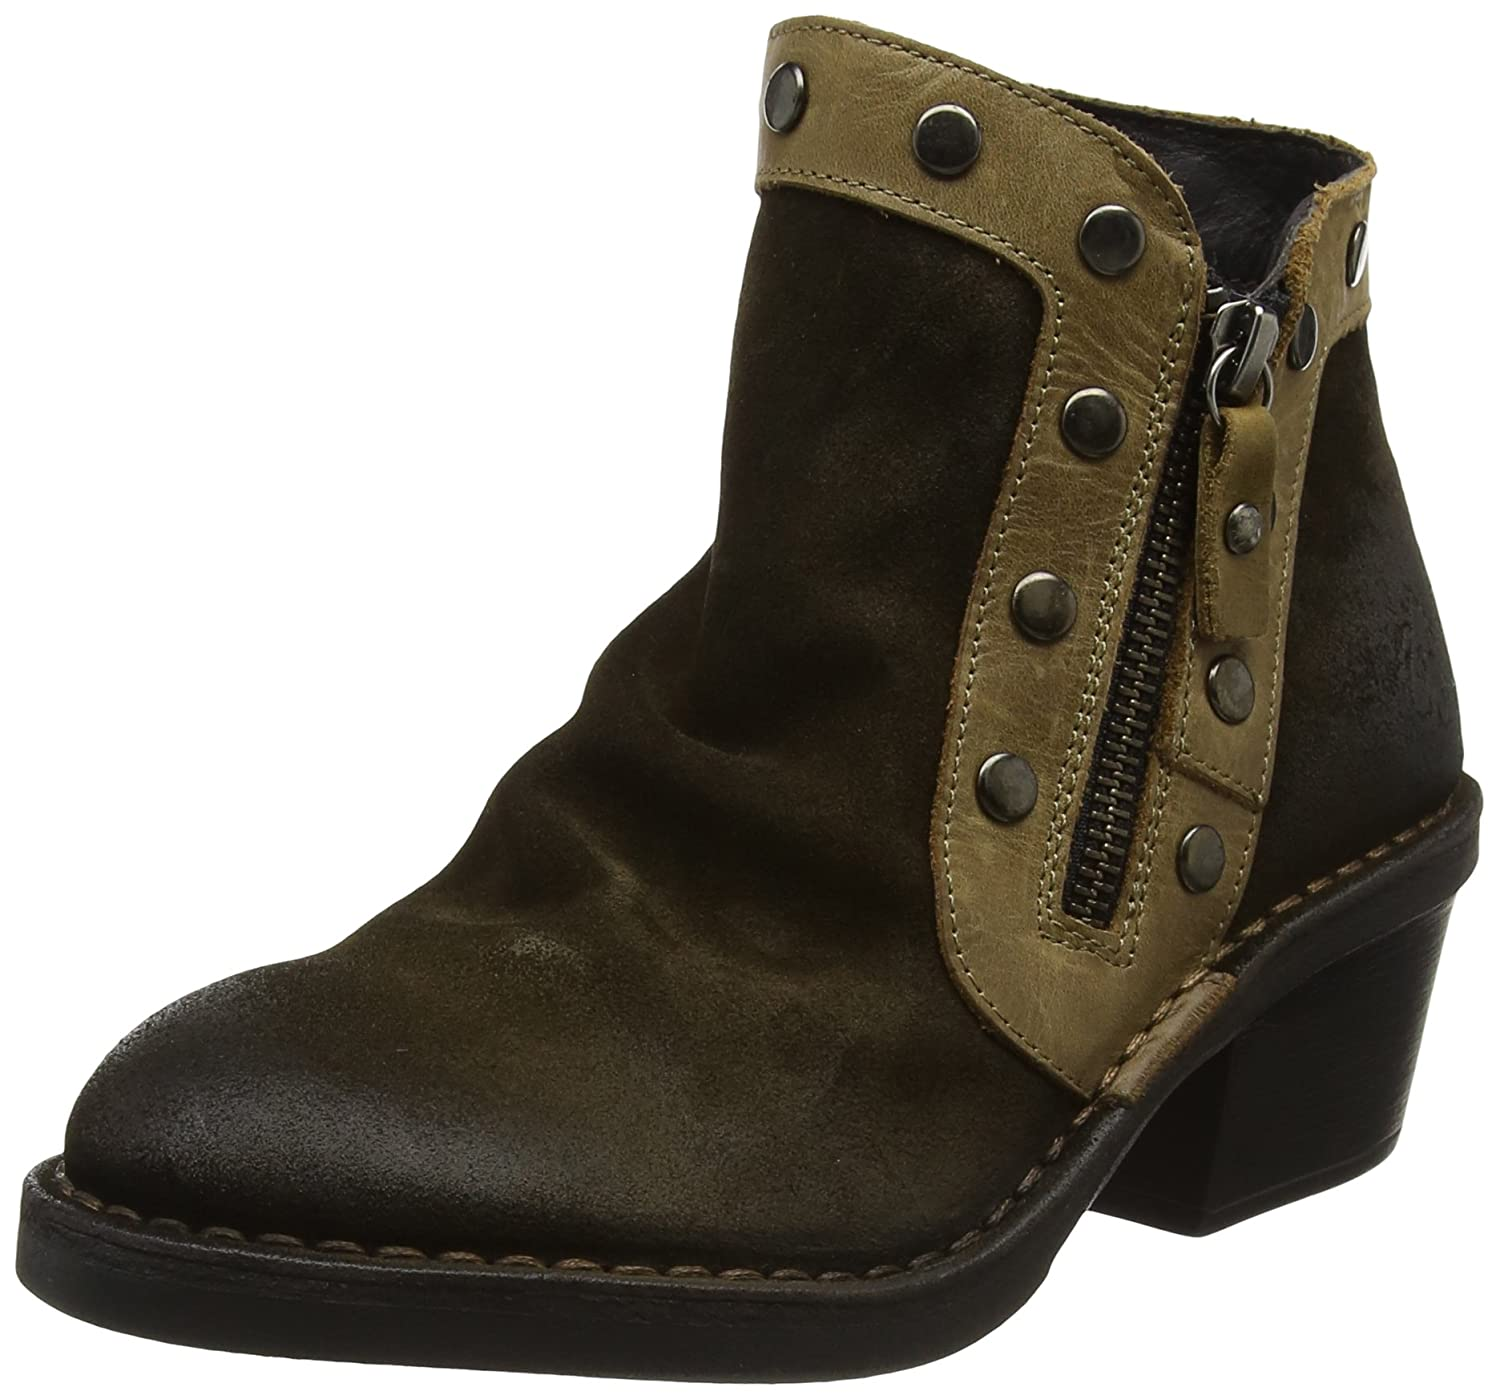 FLY London Women's Duke941fly Ankle Boot B06X9J4MFP 39 M EU (8-8.5 US)|Sludge/Olive